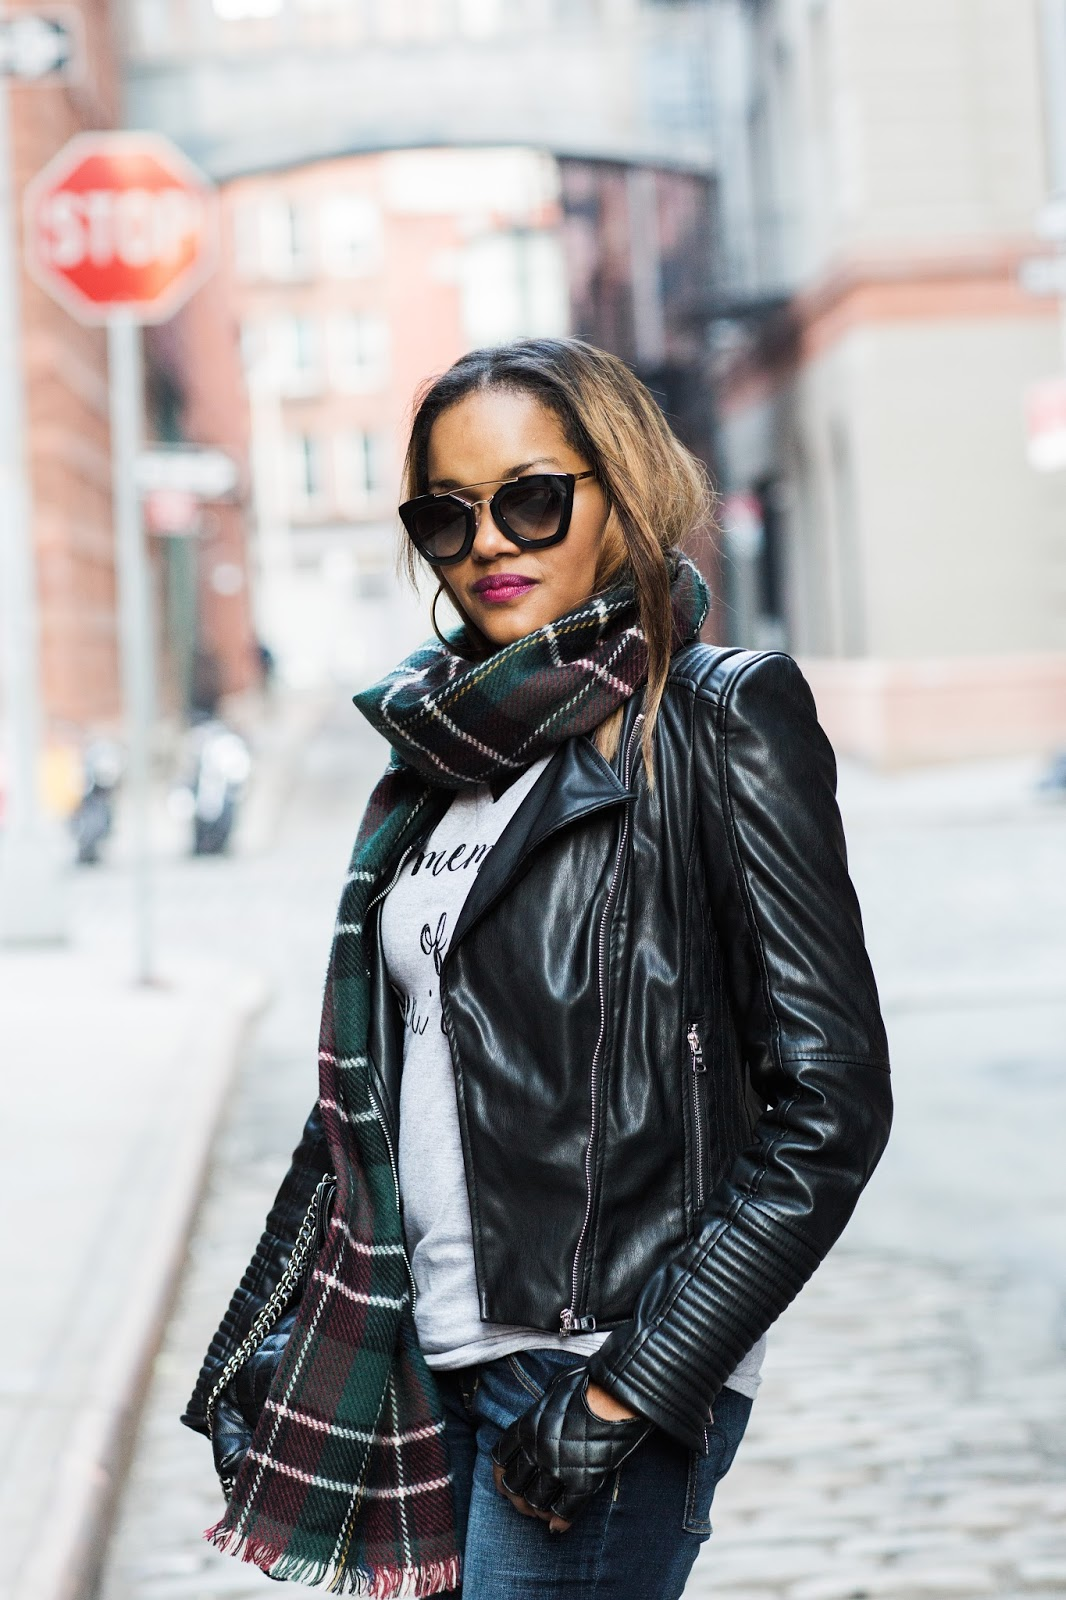 dallas fashion blogger, fashion blogger, how to wear graphic tee, blanket scarf, zara scarf, leather jacket outfit, prada sunglasses, look for less chanel bag, fingerless gloves, winter fashion